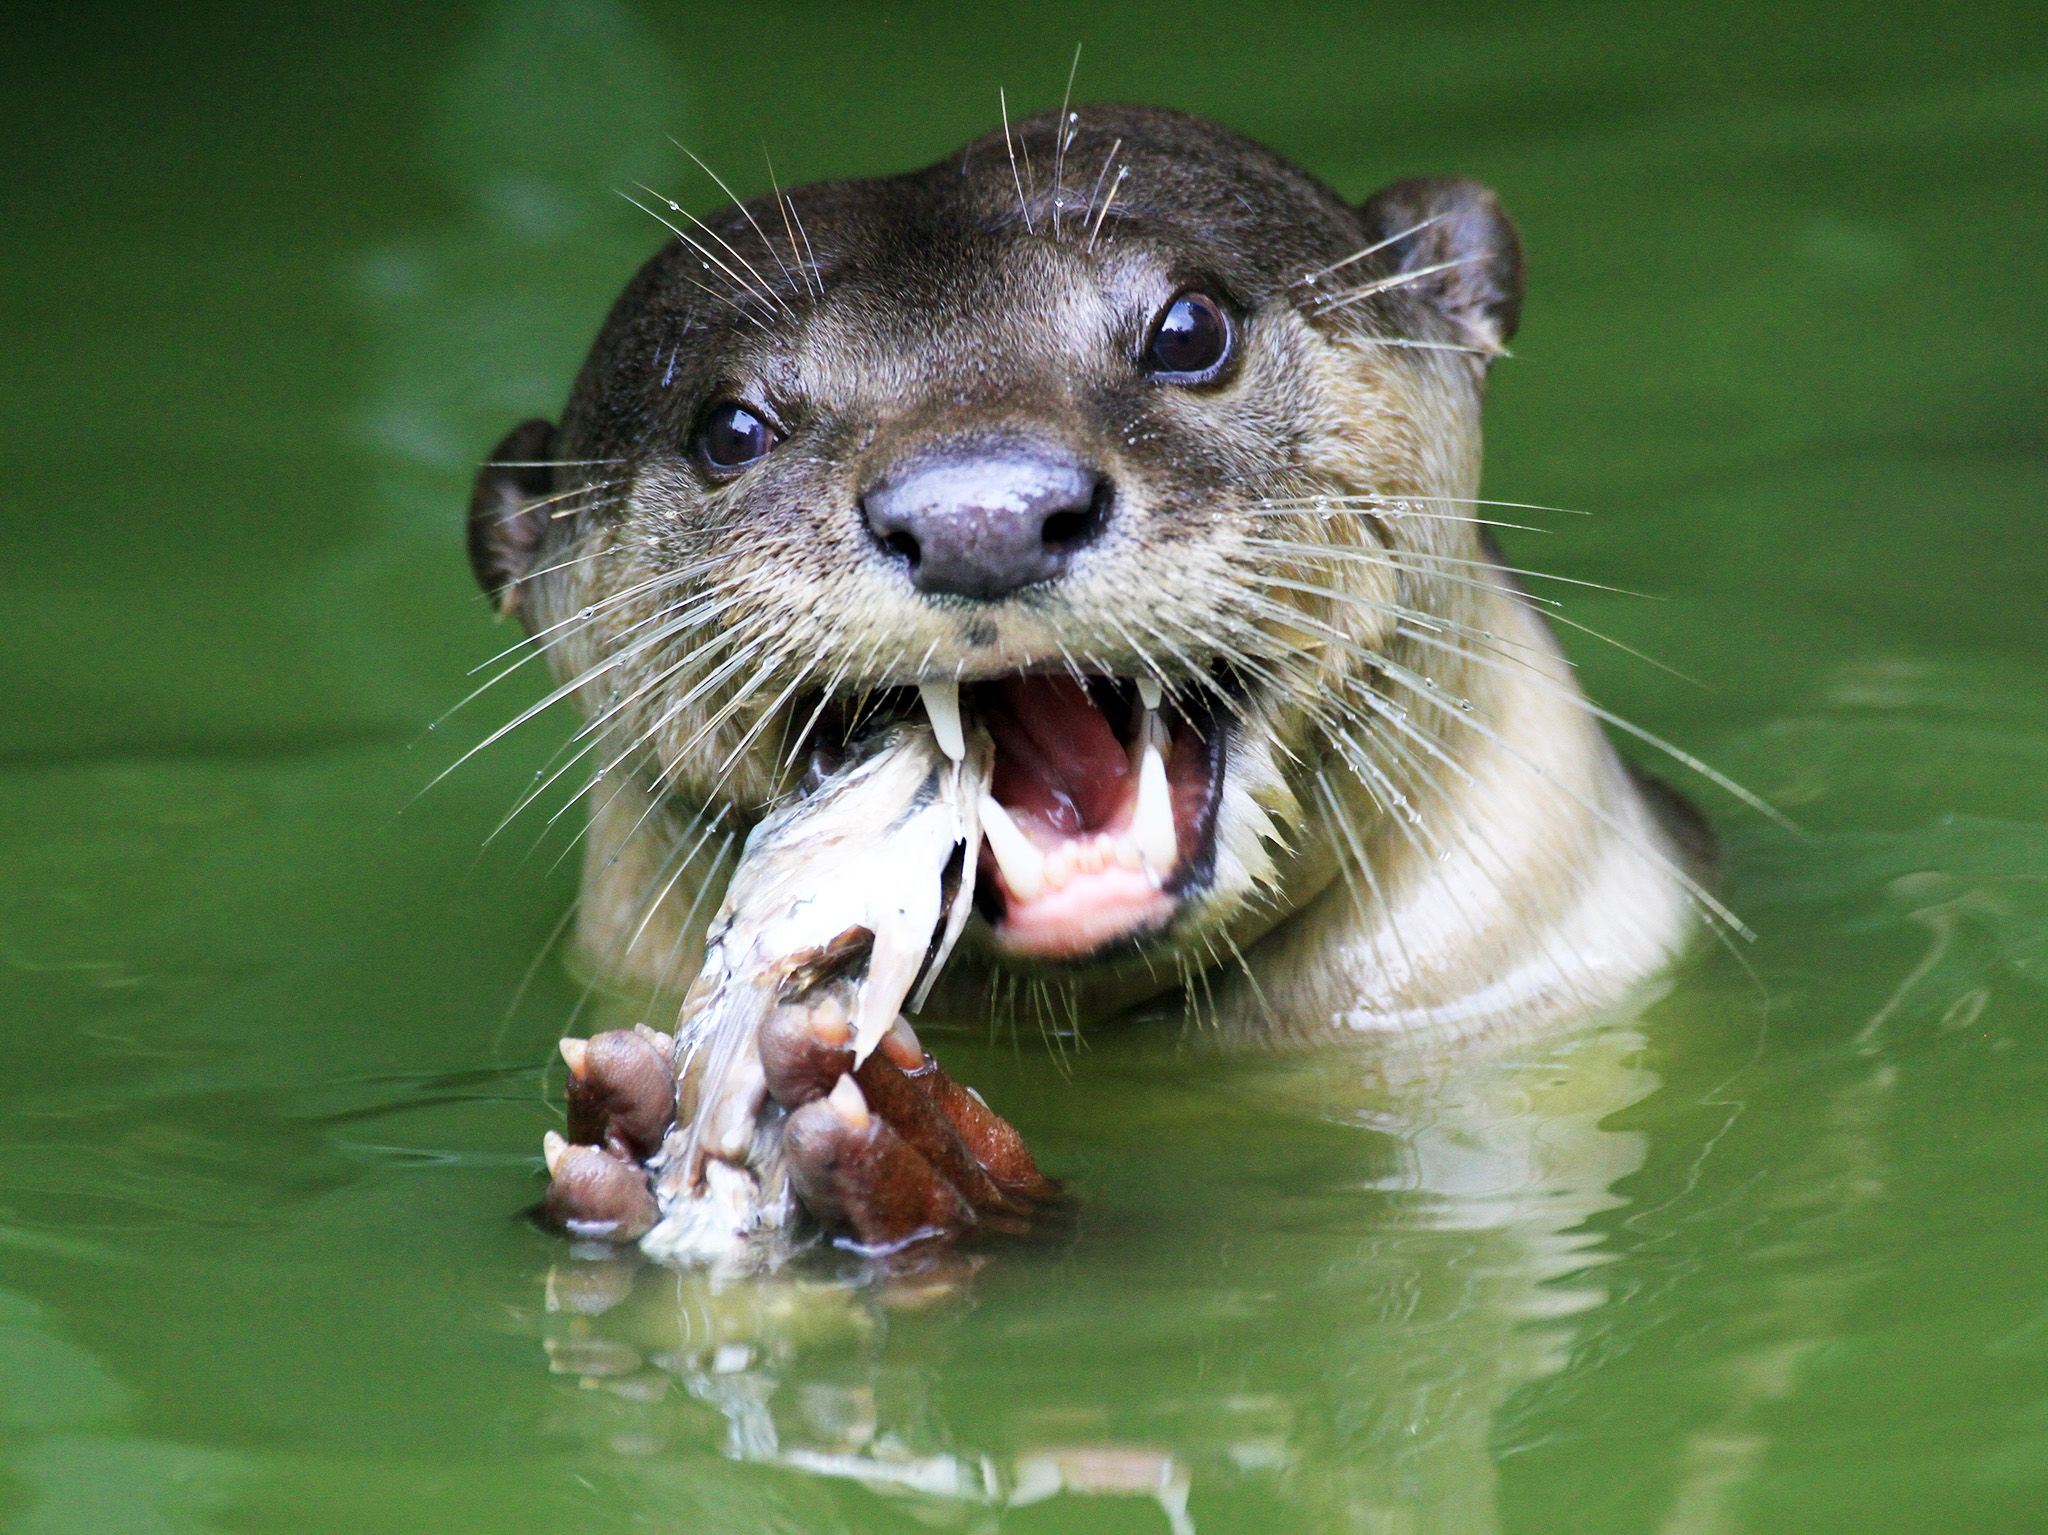 Borneo: Otter, facing camera, eating fish. This image is from Borneo's Secret Kingdom. [Photo of the day - 八月 2017]